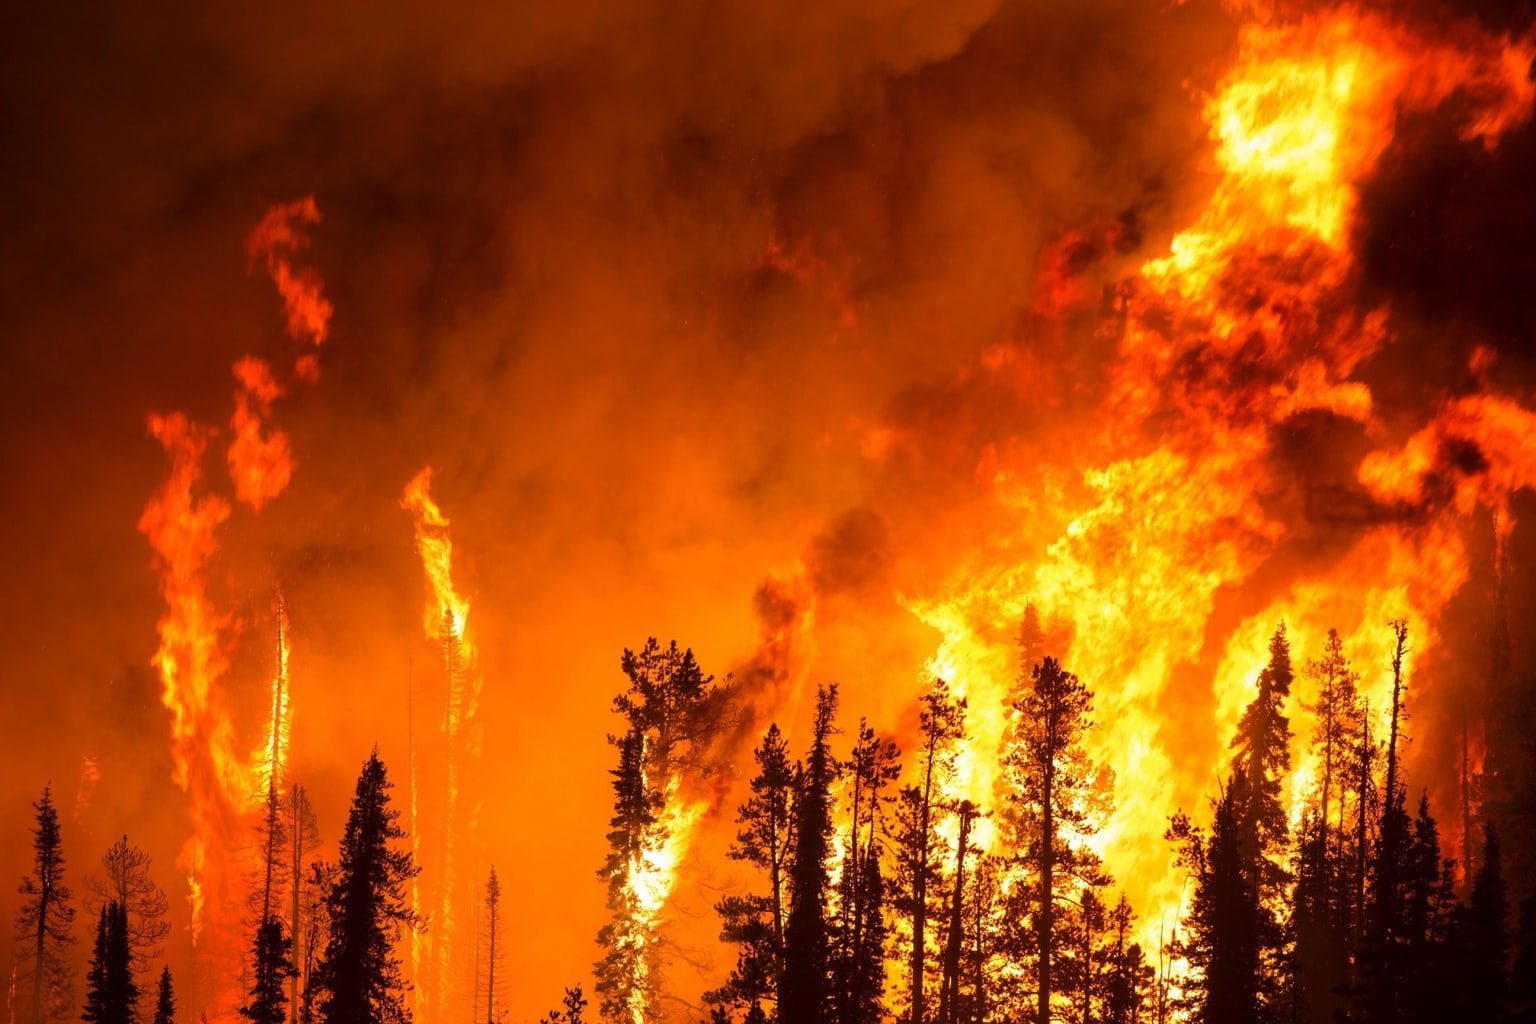 How likely are you to be affected by a natural disaster in the United States, such as a wild fire?